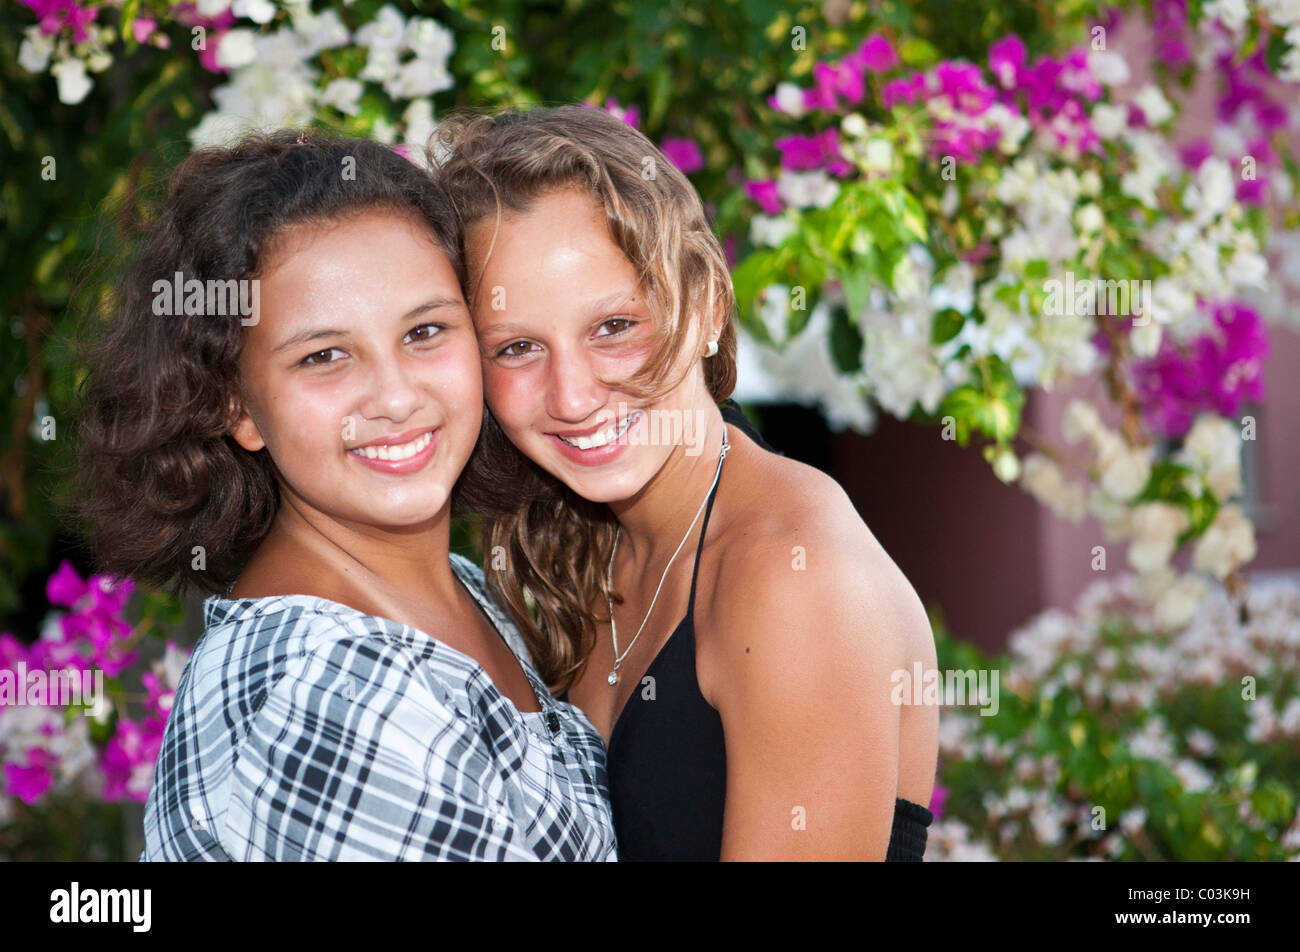 Portrait of two thirteen-year-olds girls in front of flowers - Stock Image